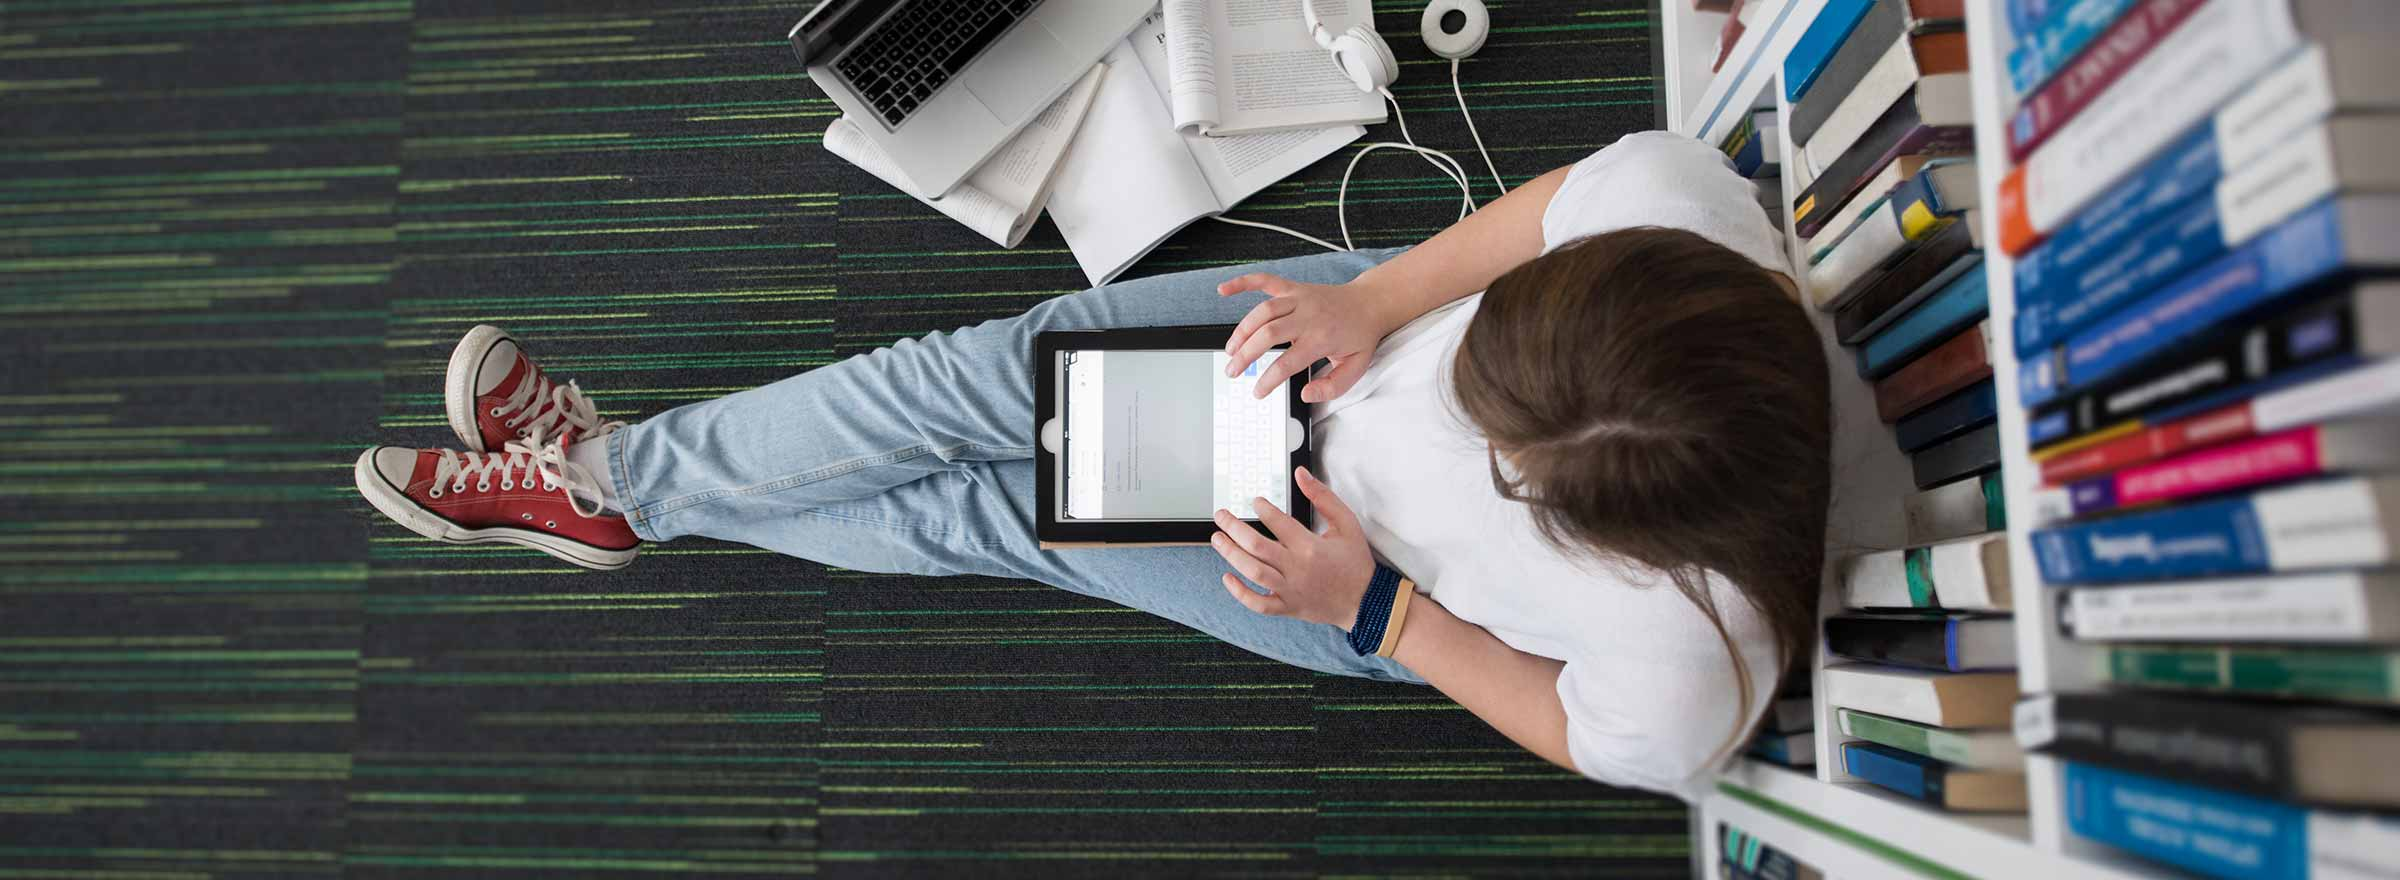 overhead view of a woman sitting leaning against bookshelves and using a tablet